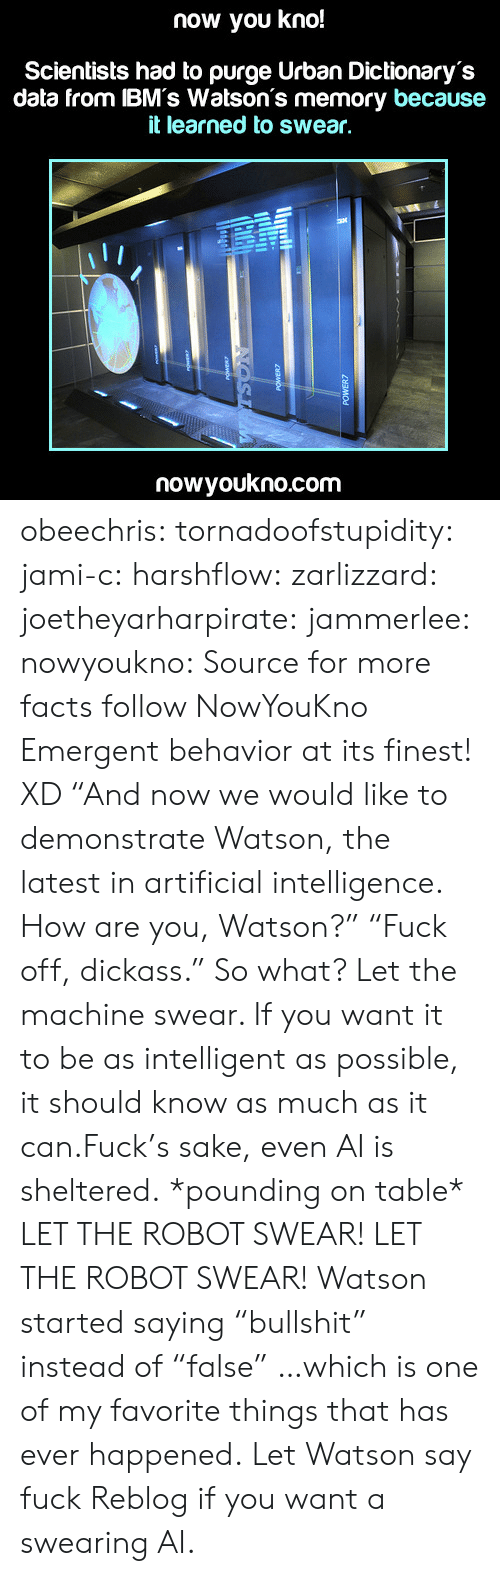 "Jami: now you kno!  Scientists had to purge Urban Dictionary's  data from IBM's Watson's memory because  it learned to swear,  nowyoukno.com obeechris:  tornadoofstupidity:  jami-c:  harshflow:  zarlizzard:  joetheyarharpirate:  jammerlee:  nowyoukno:  Source for more facts follow NowYouKno  Emergent behavior at its finest! XD  ""And now we would like to demonstrate Watson, the latest in artificial intelligence. How are you, Watson?"" ""Fuck off, dickass.""  So what? Let the machine swear. If you want it to be as intelligent as possible, it should know as much as it can.Fuck's sake, even AI is sheltered.  *pounding on table* LET THE ROBOT SWEAR! LET THE ROBOT SWEAR!  Watson started saying ""bullshit"" instead of ""false"" …which is one of my favorite things that has ever happened.   Let Watson say fuck  Reblog if you want a swearing AI."